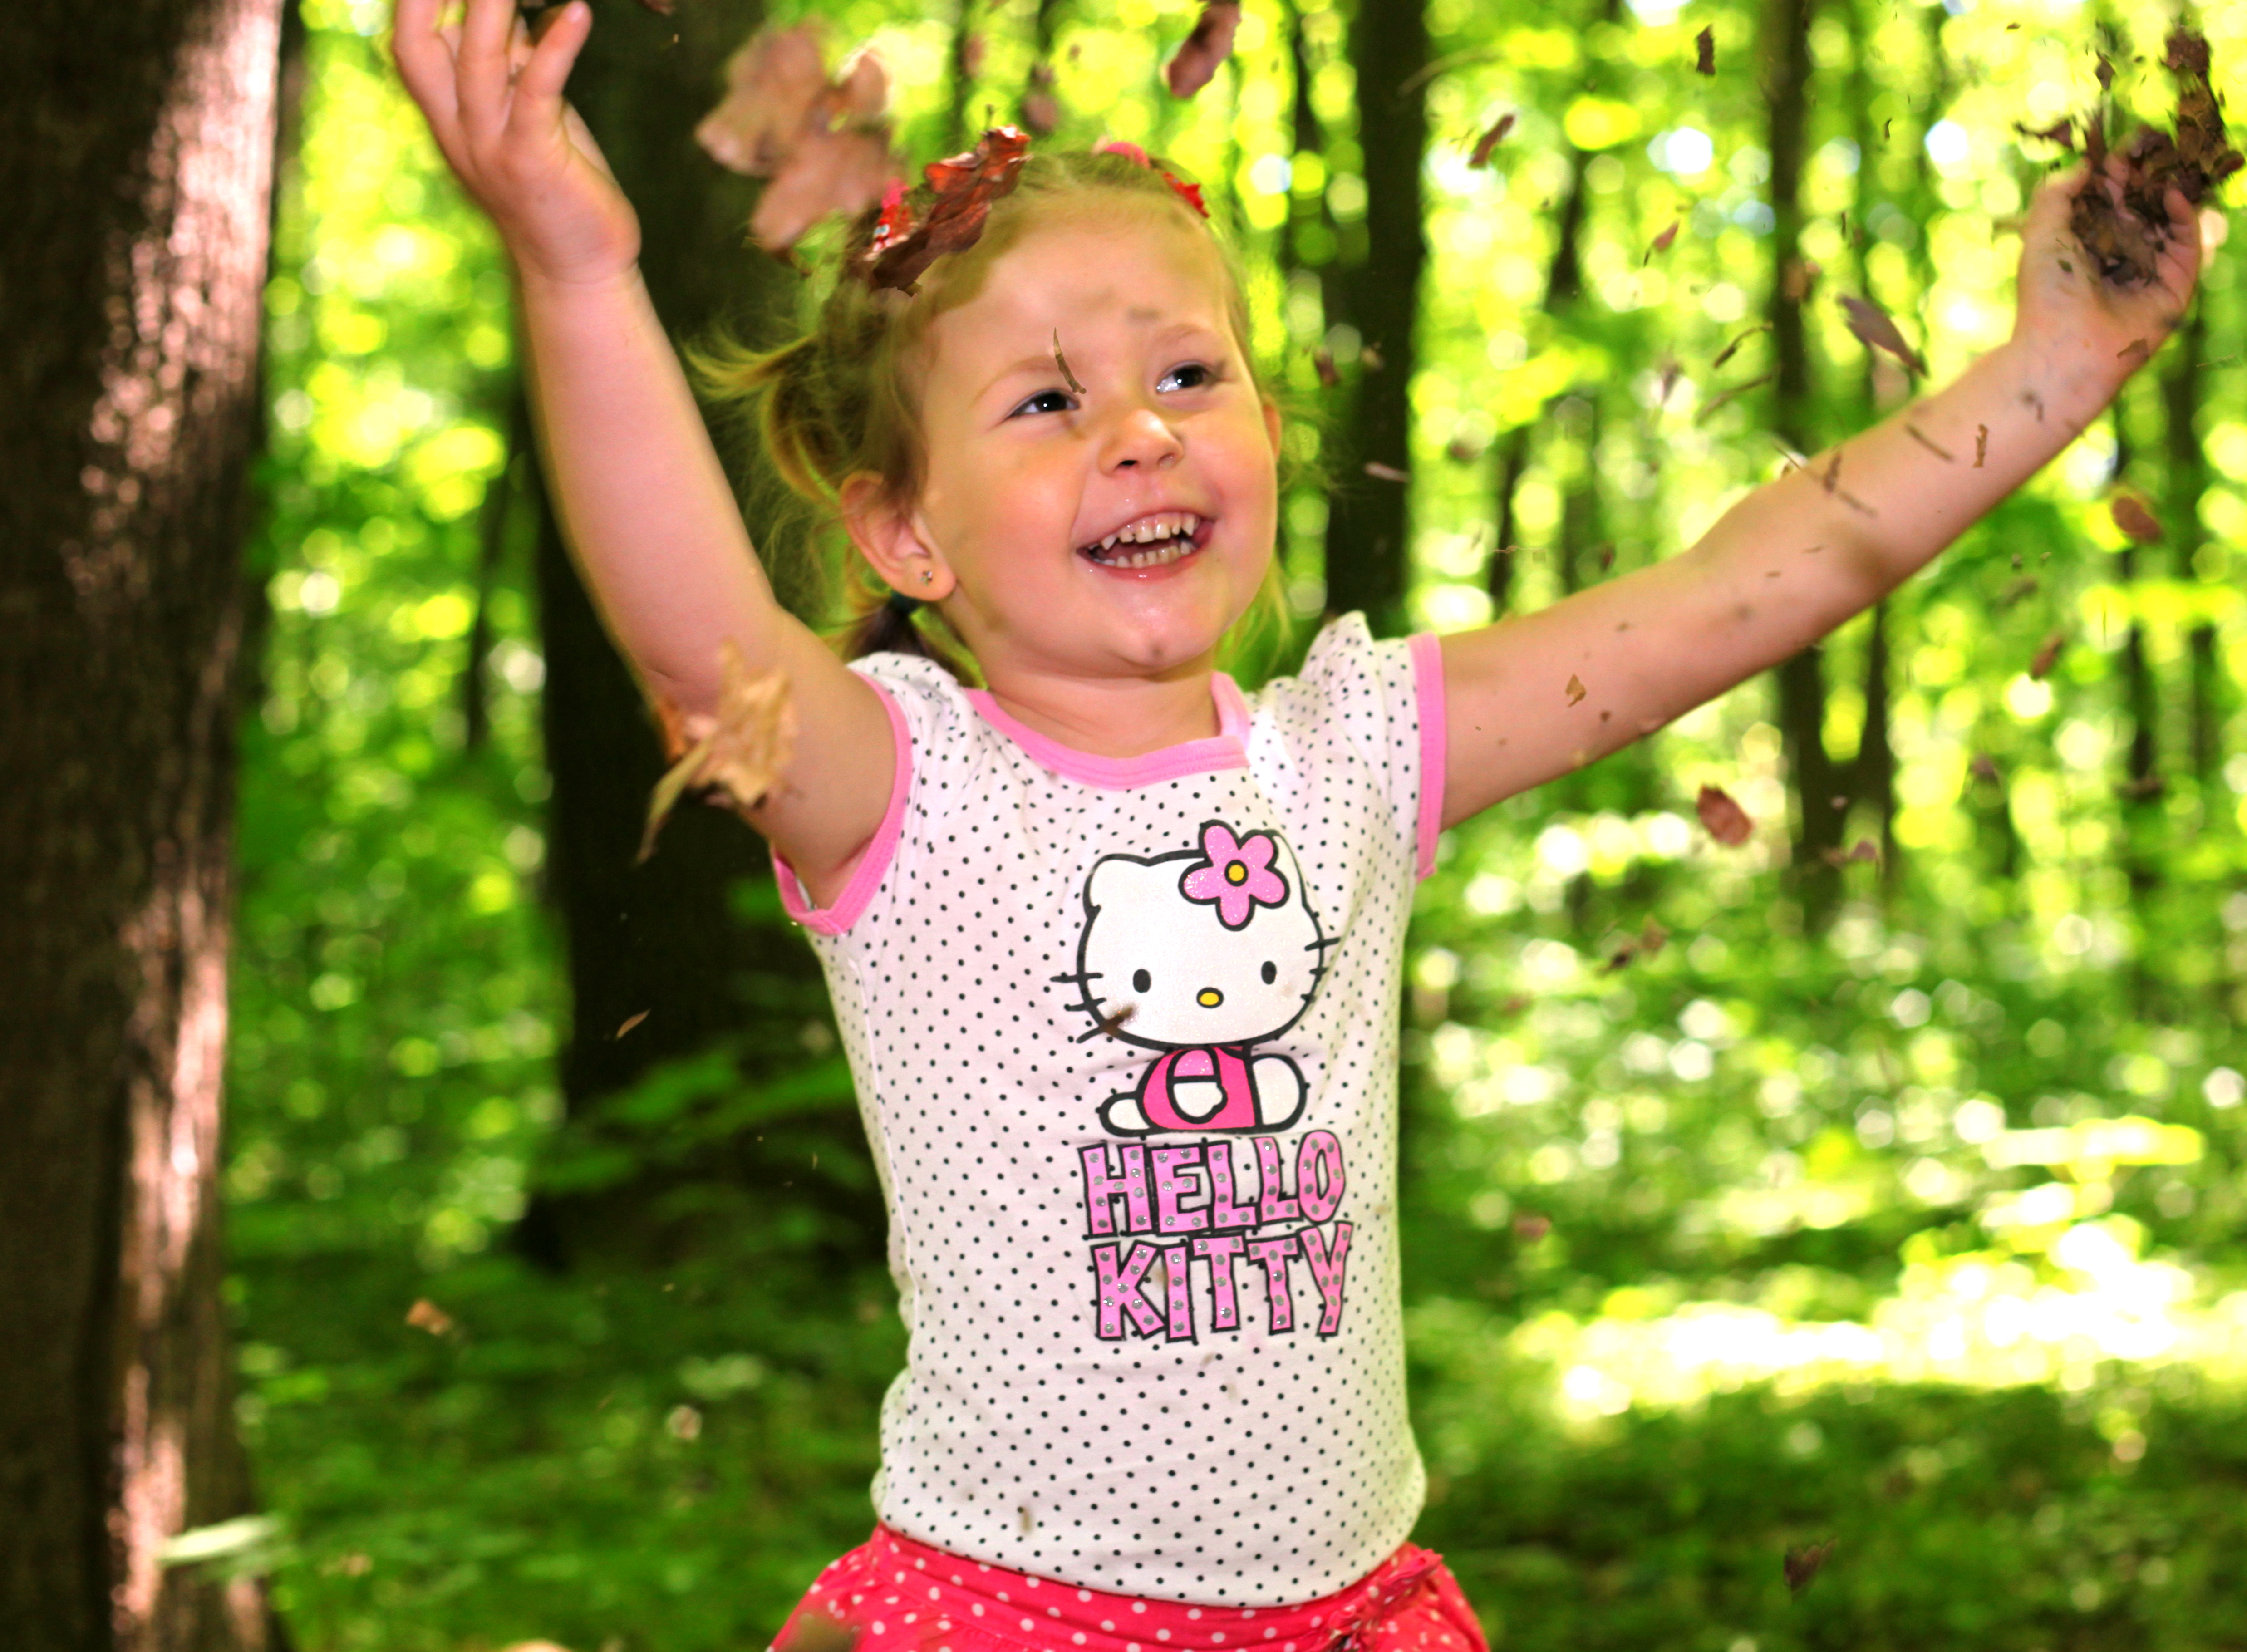 a cute Catholic kid girl in a forest photographed in May 2013, image 1/2